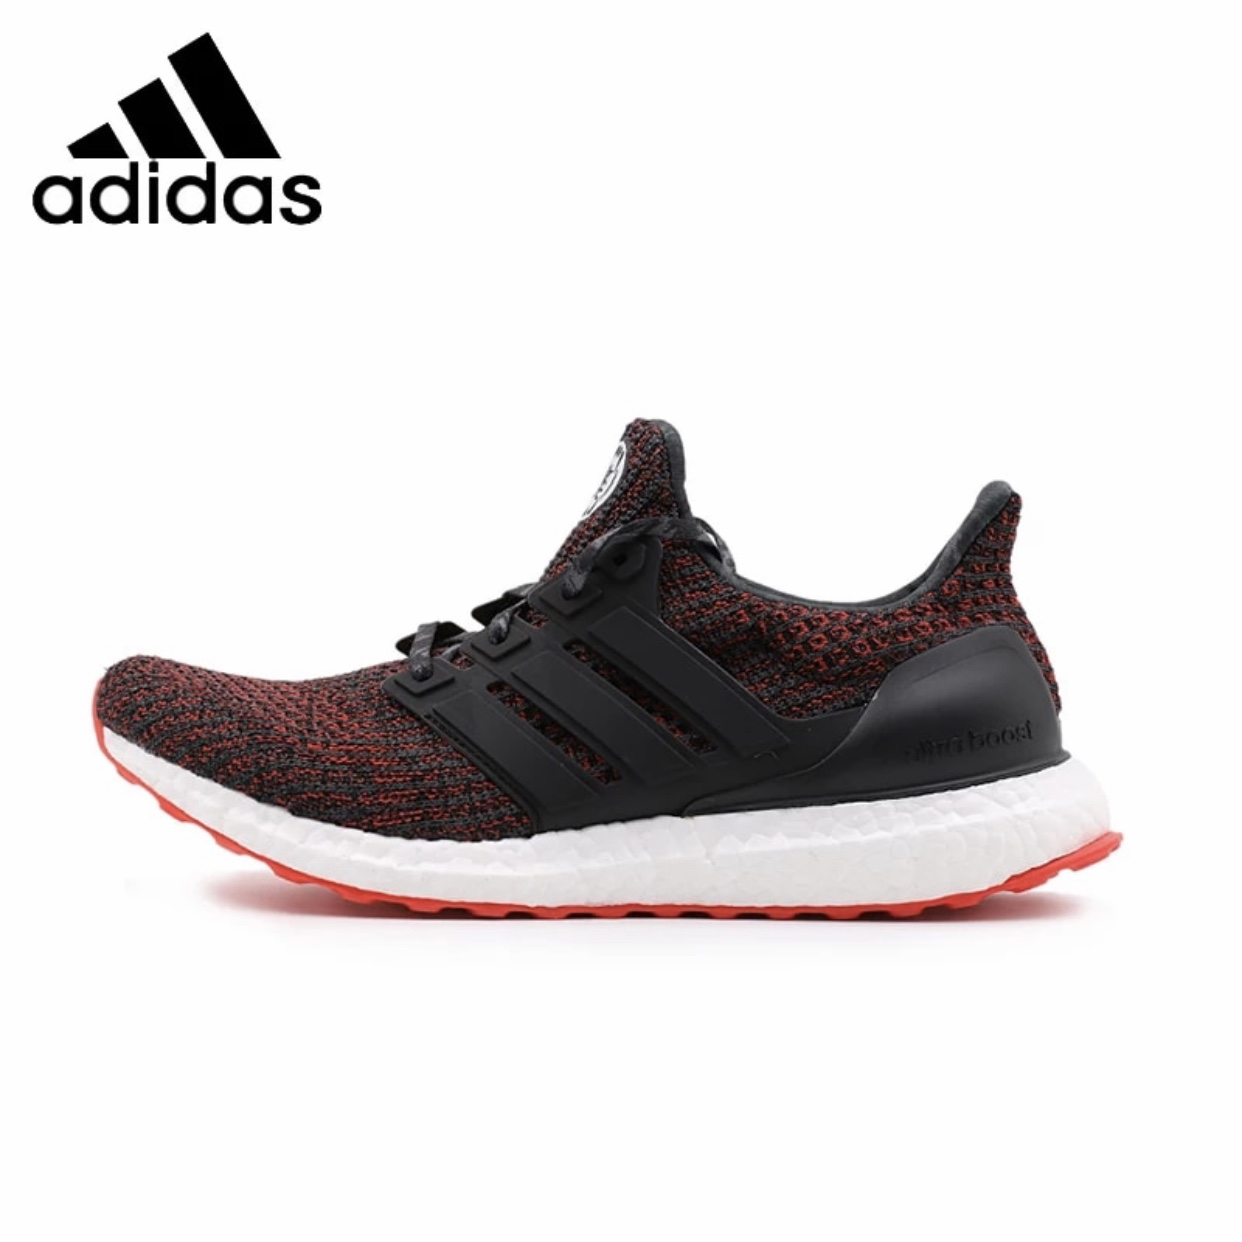 adidas mens ultraboost stability running shoes